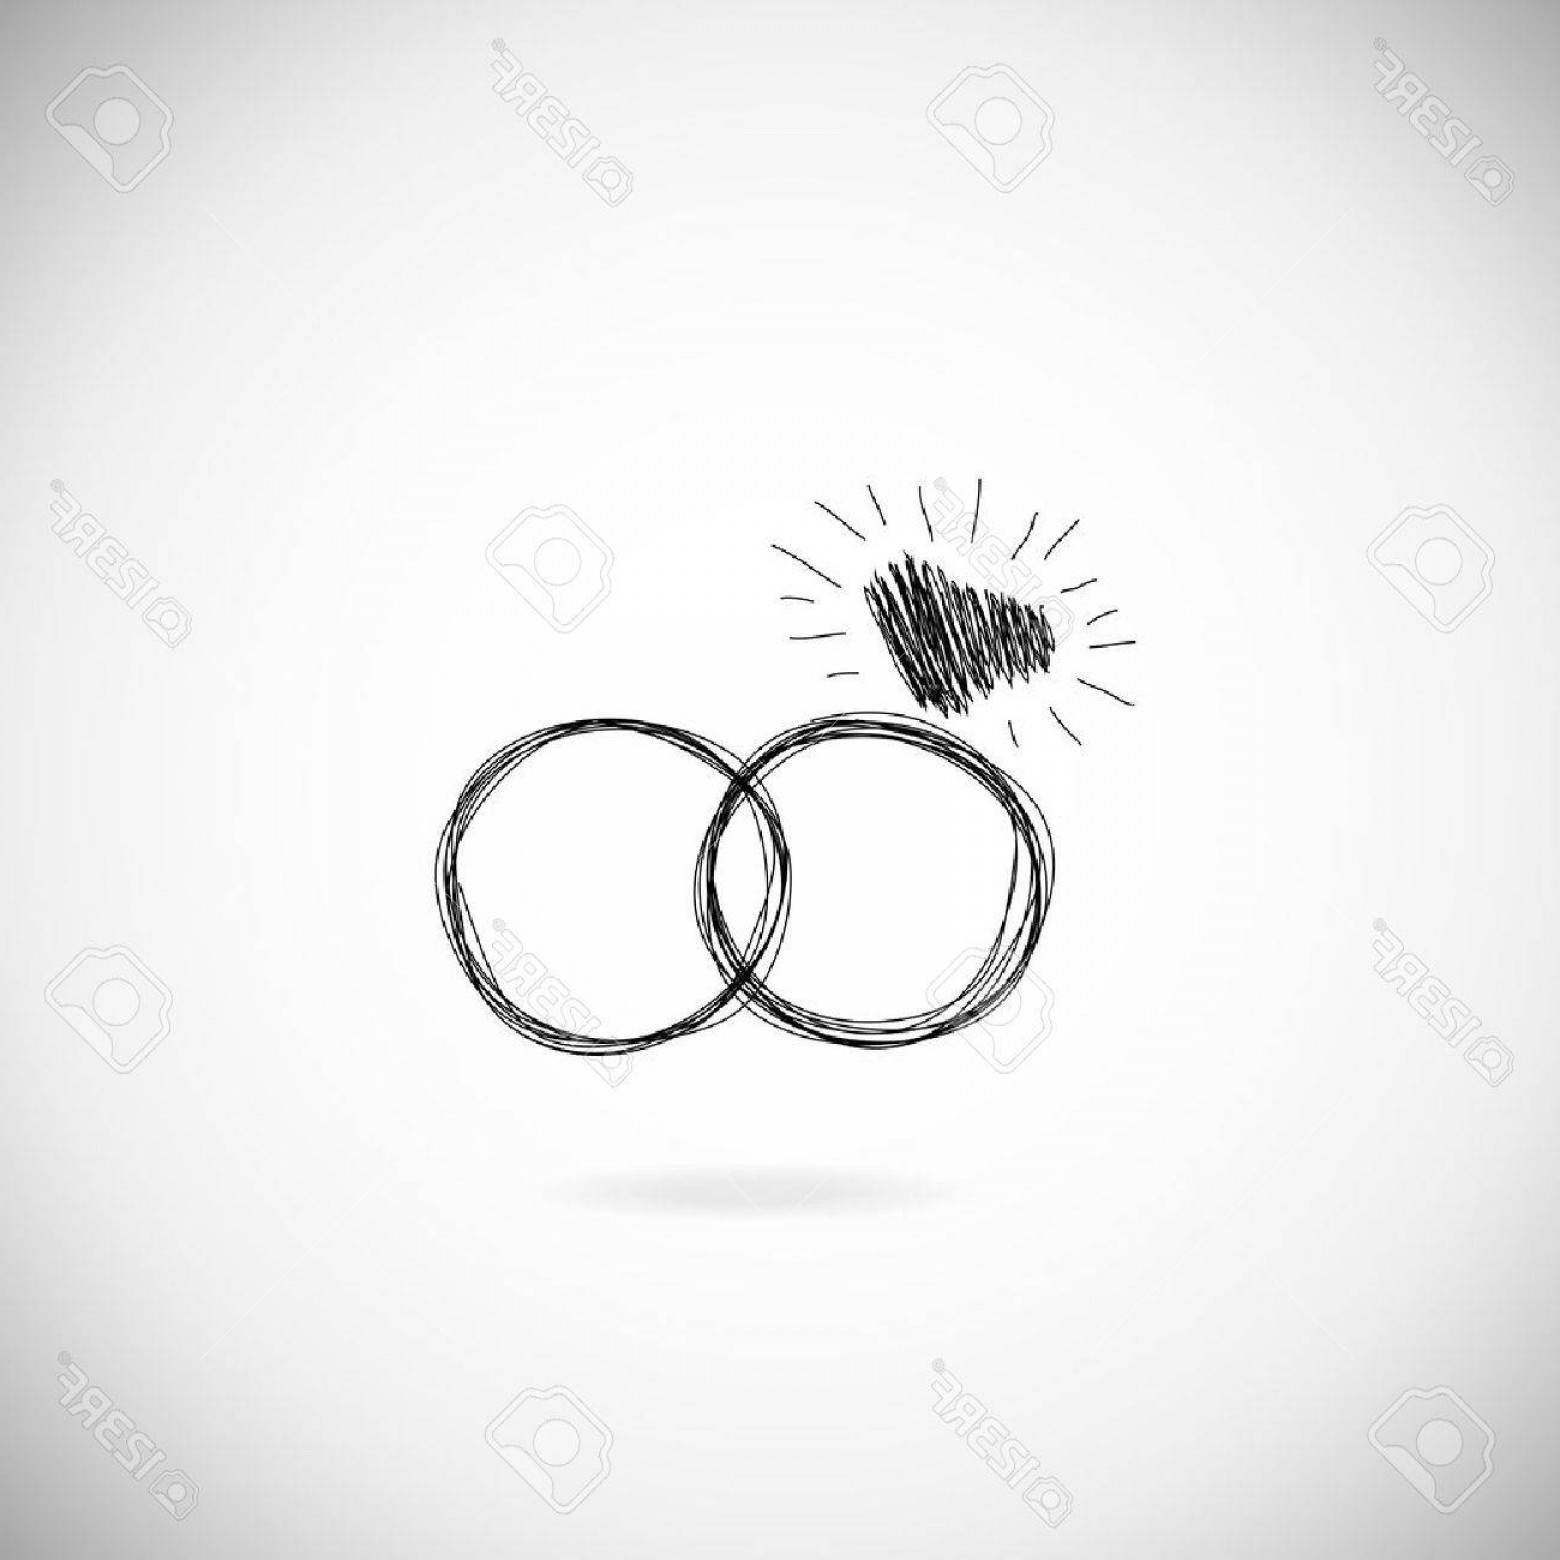 Hand With Ring Silhouette Vector: Photostock Vector Wedding Silhouette Rings Icon Wedding Invitation Jewelry Hand Drawn Illustration